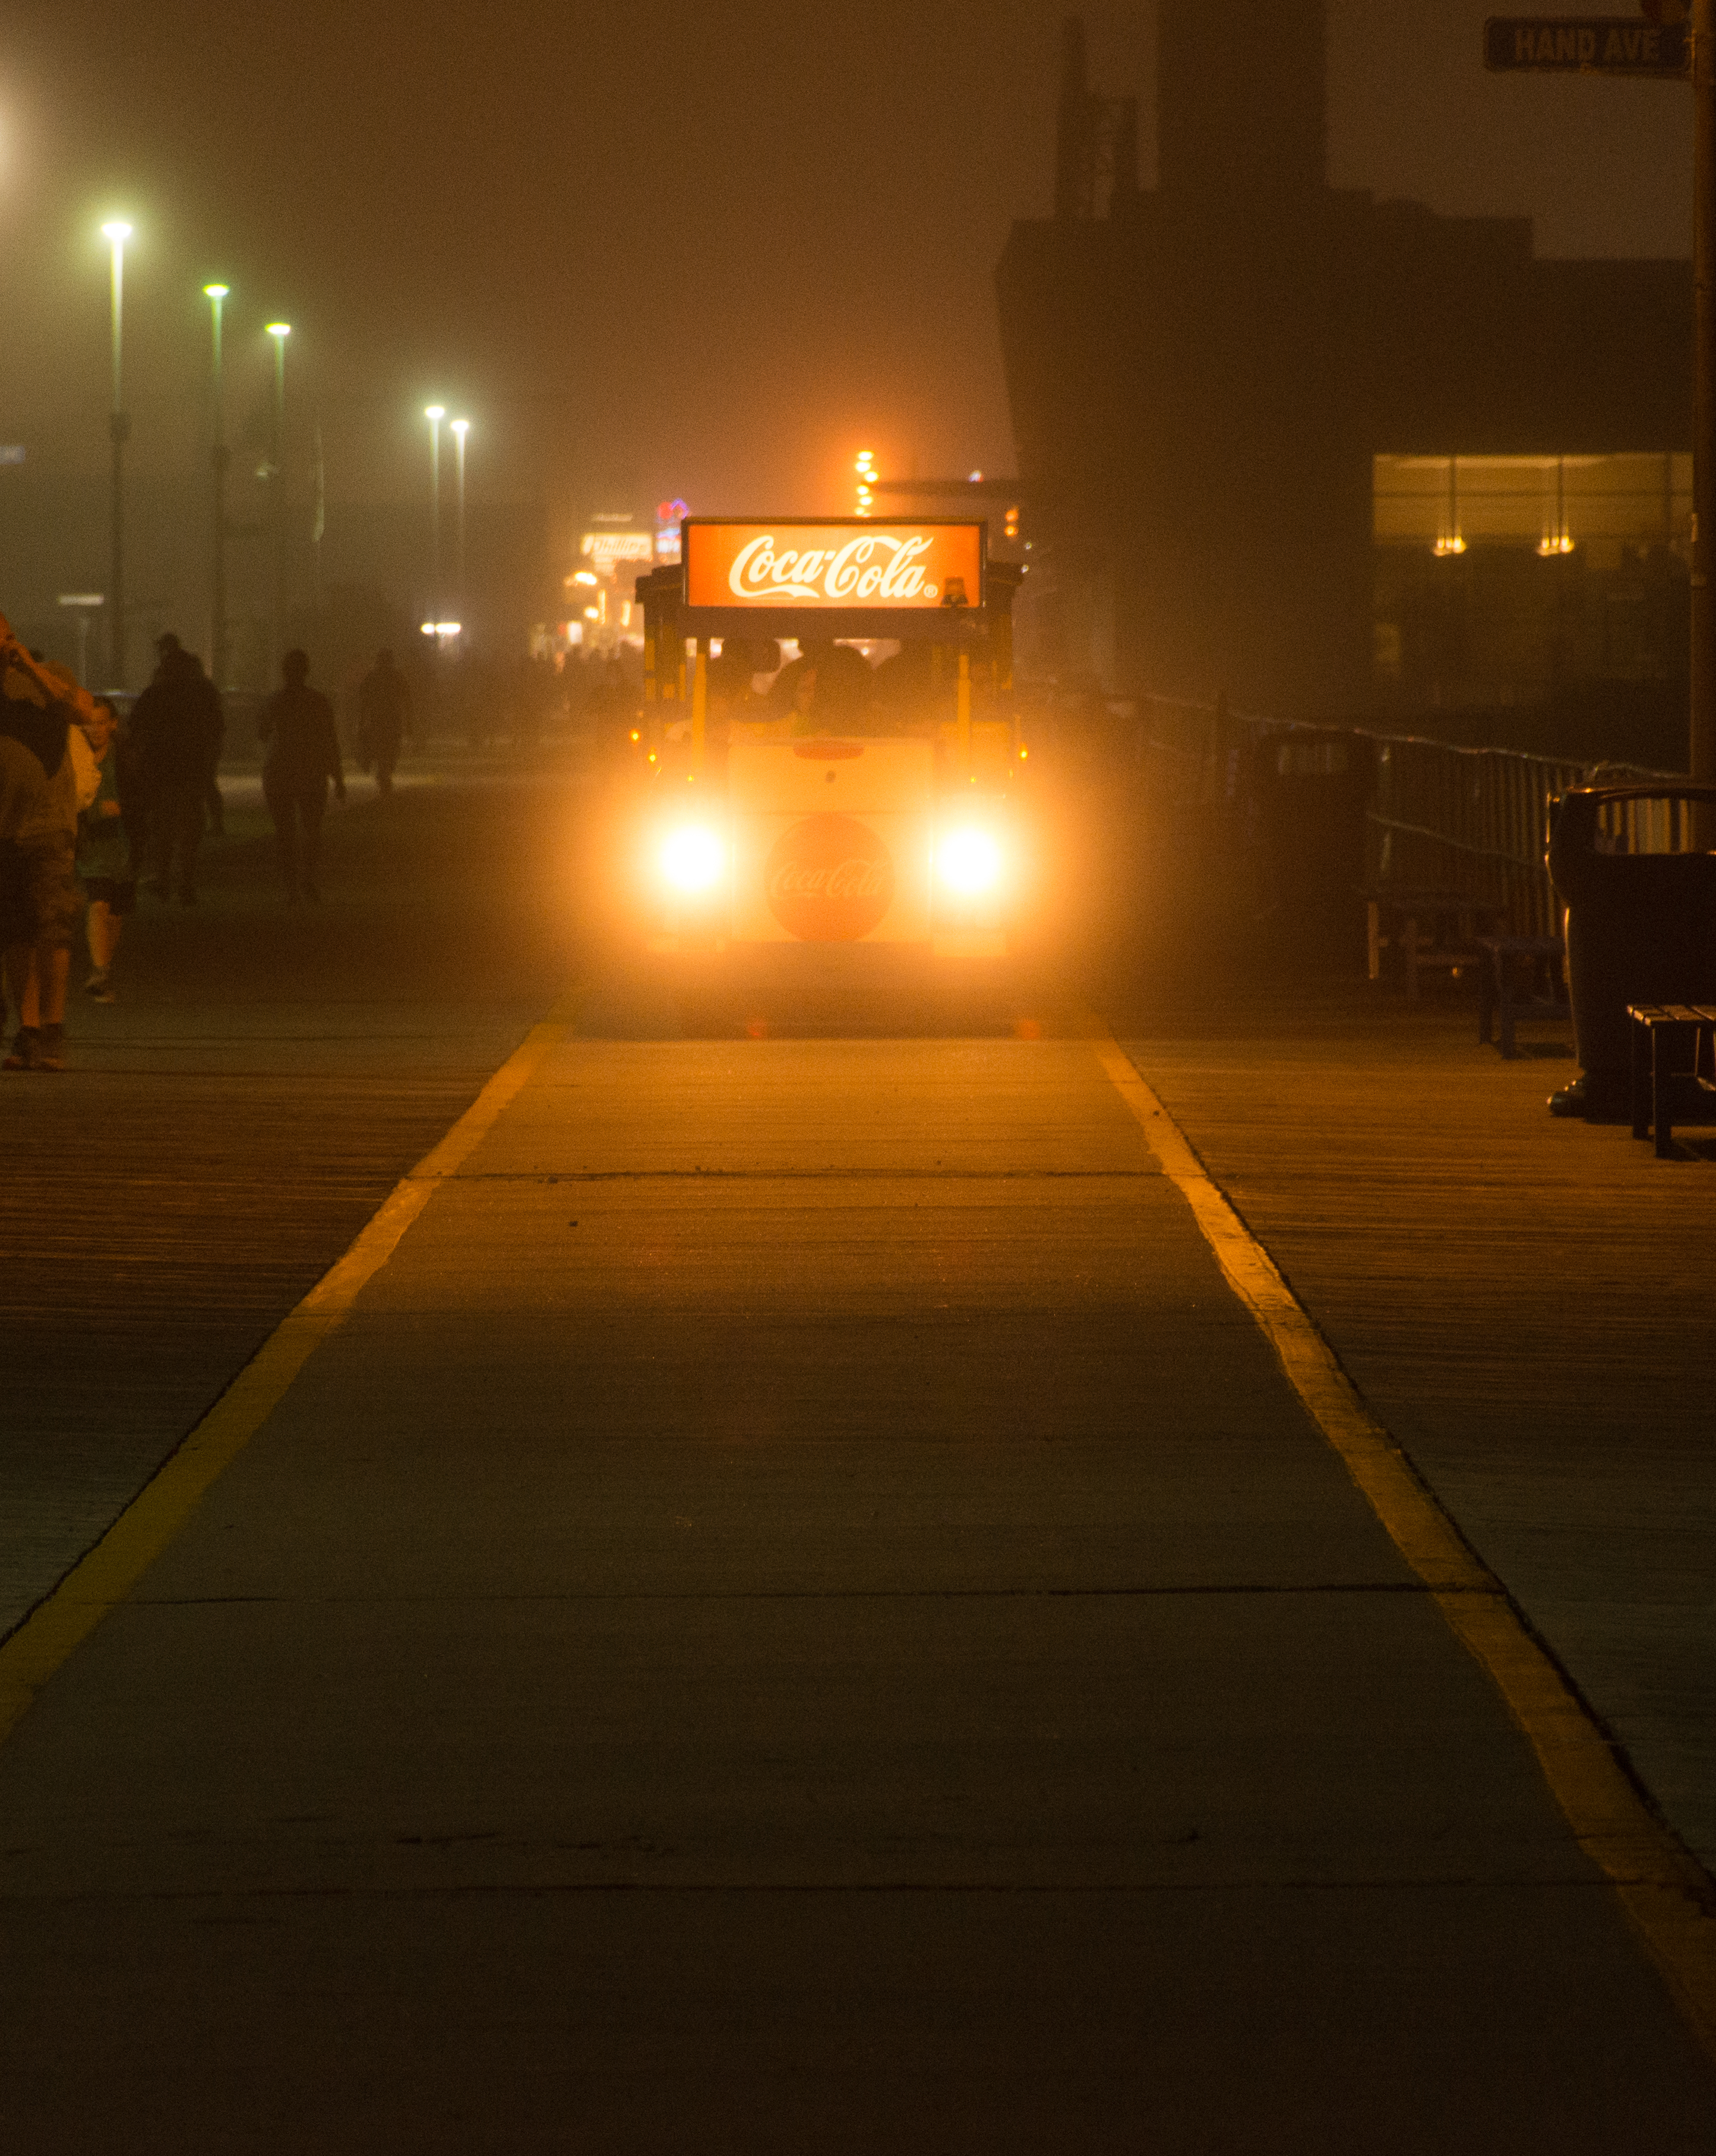 Tram Car coming up the Boardwalk in Wildwood on a foggy evening.